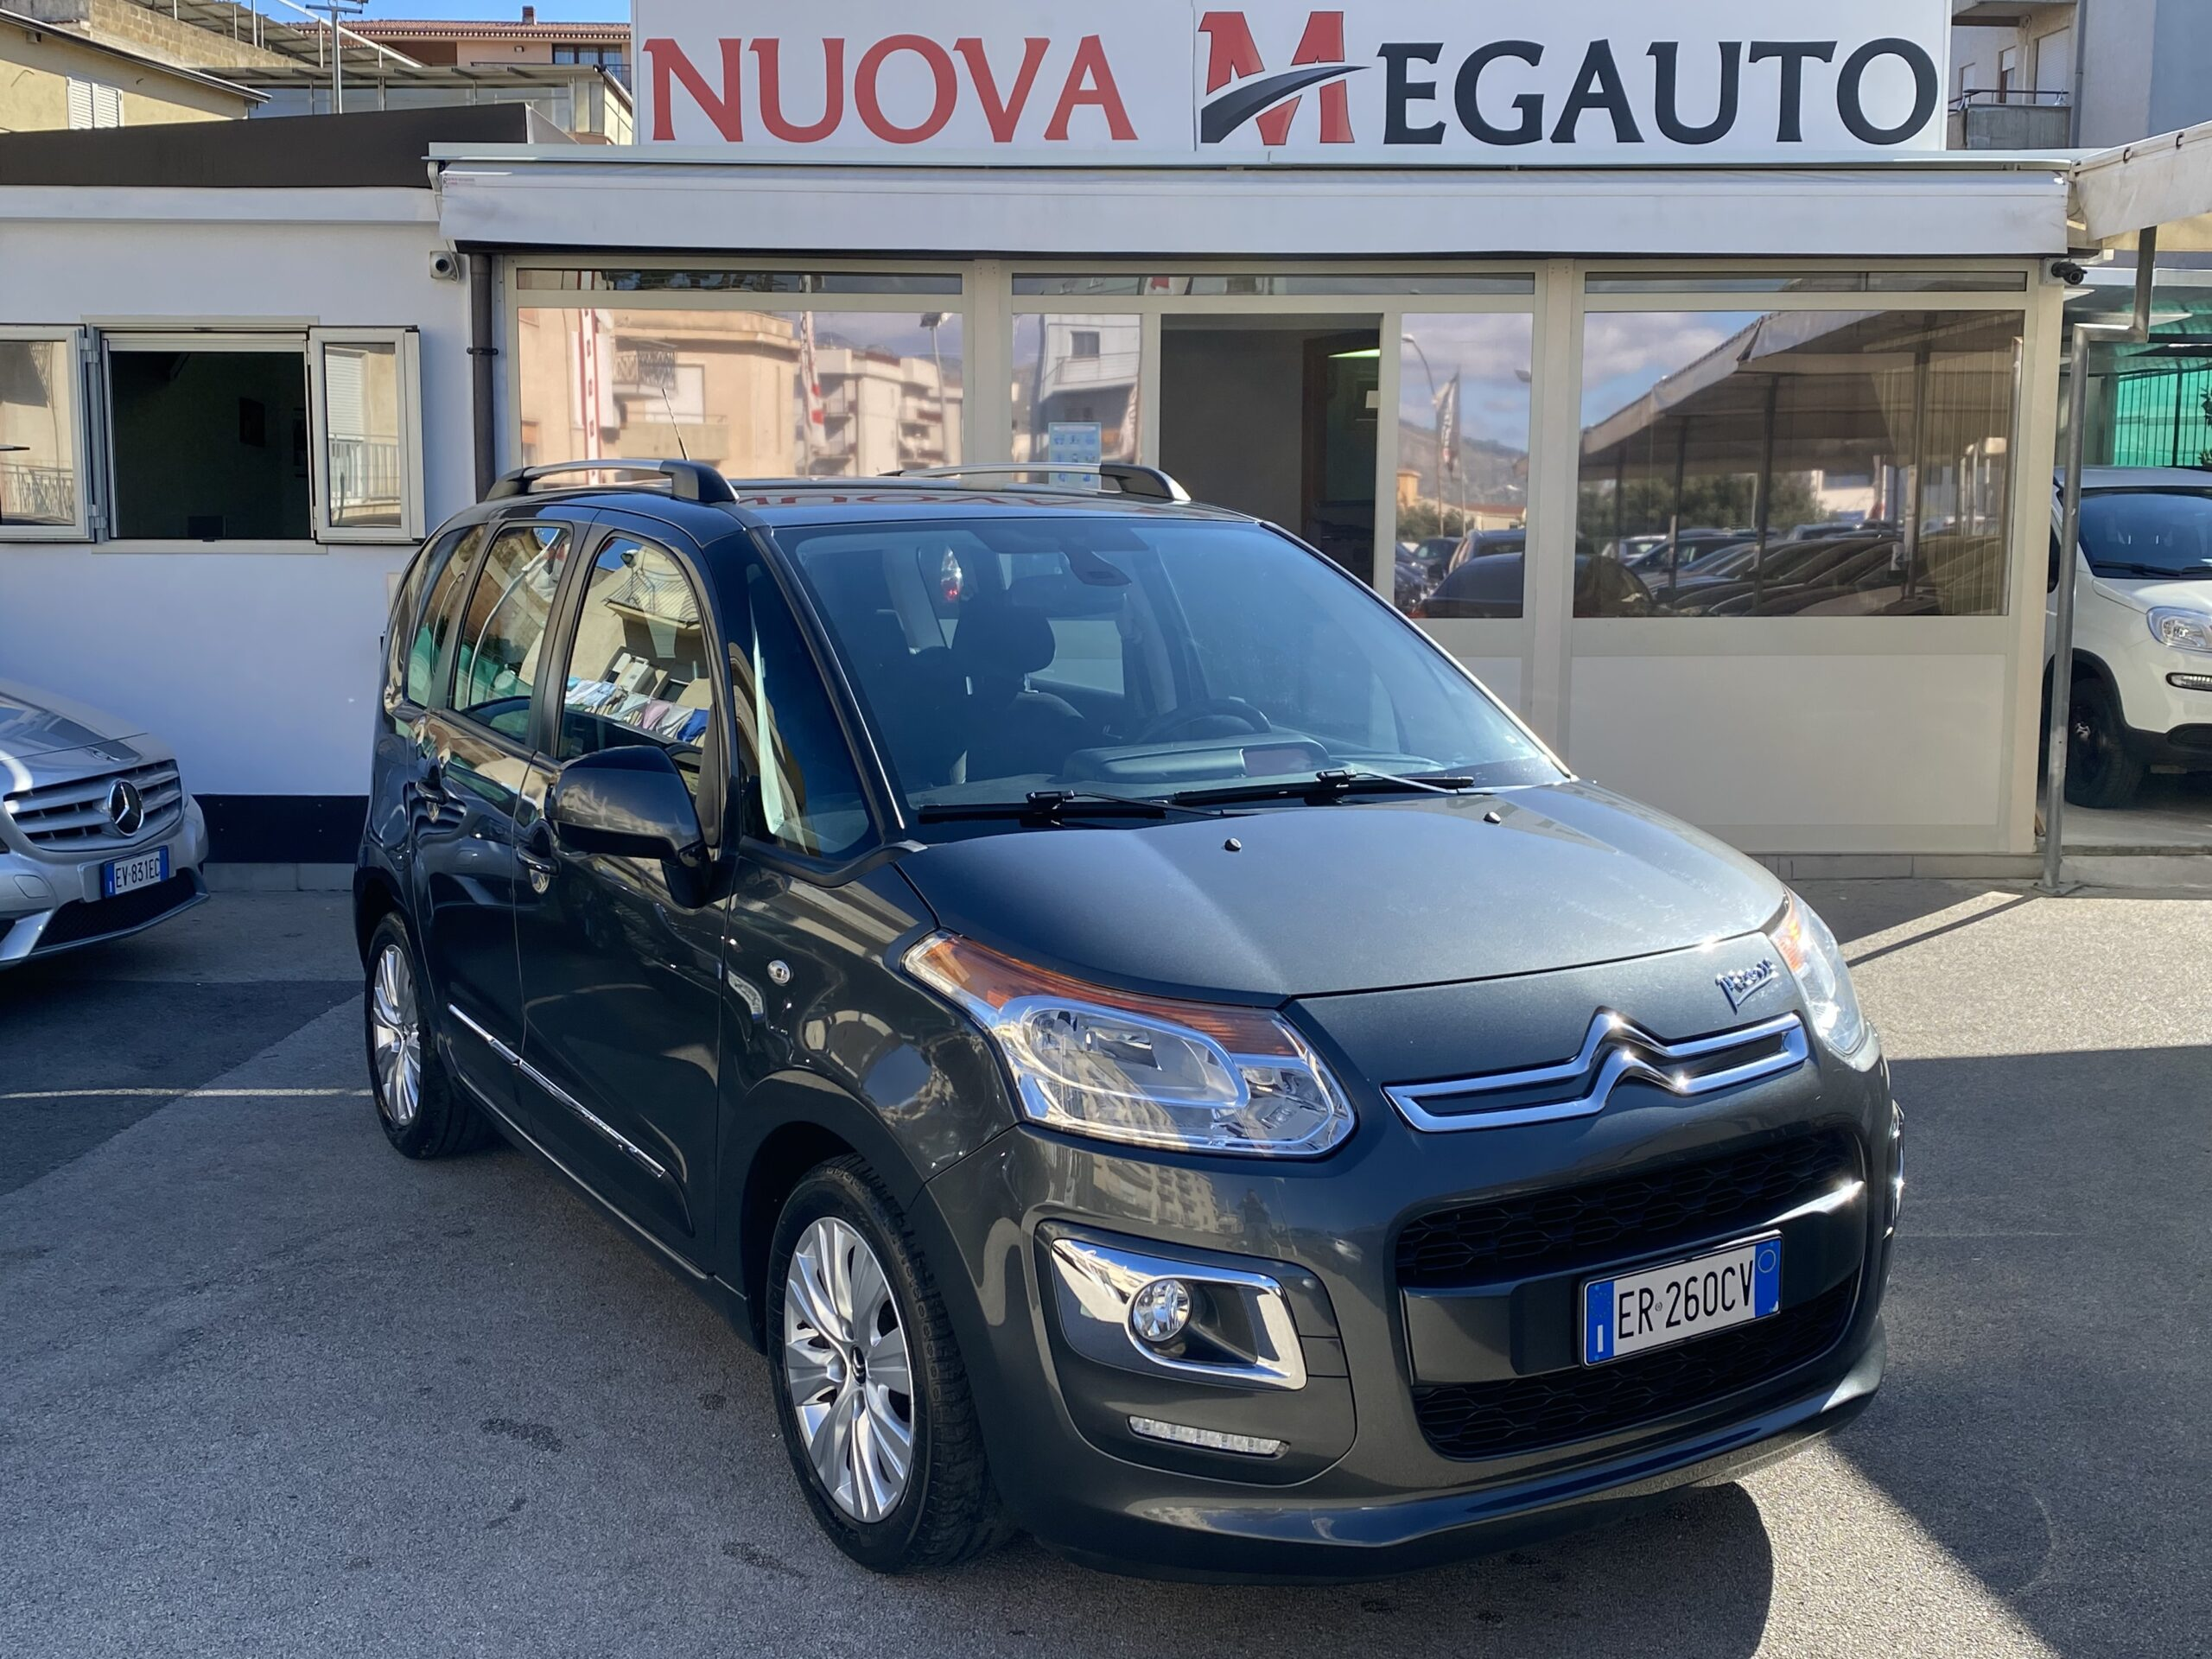 Citroen C3 Picasso 1.4 VTi 95 Exclusive